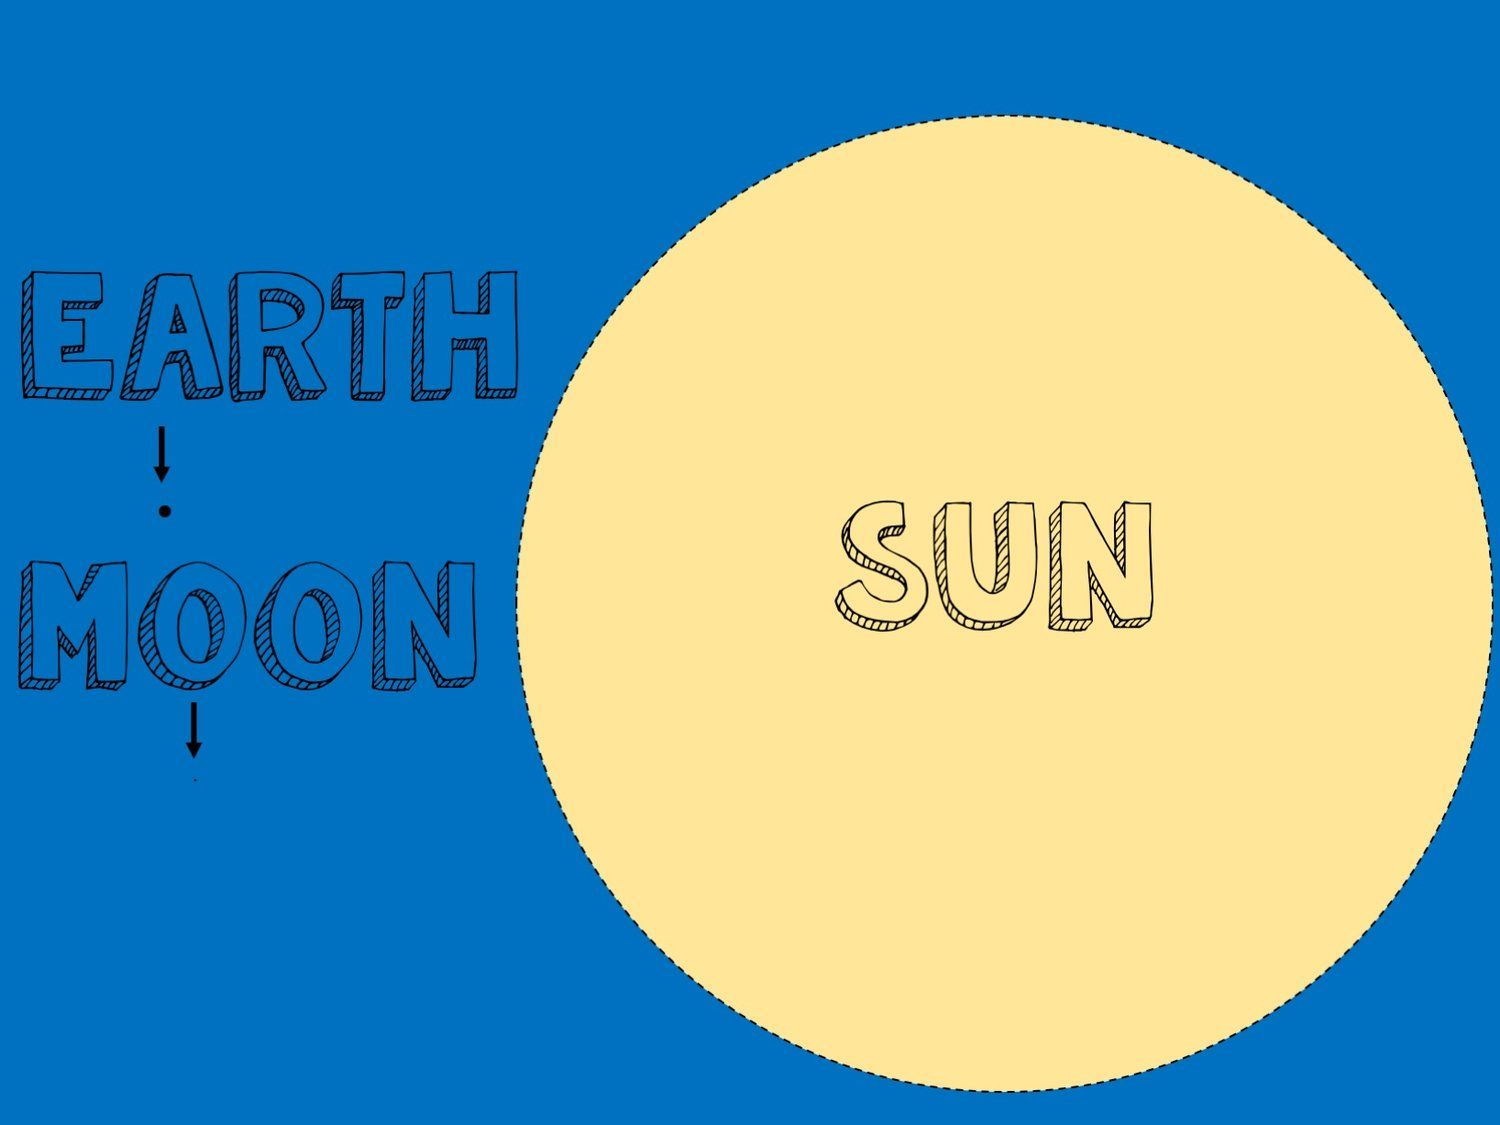 Scale Models Of The Earth Moon And Sun